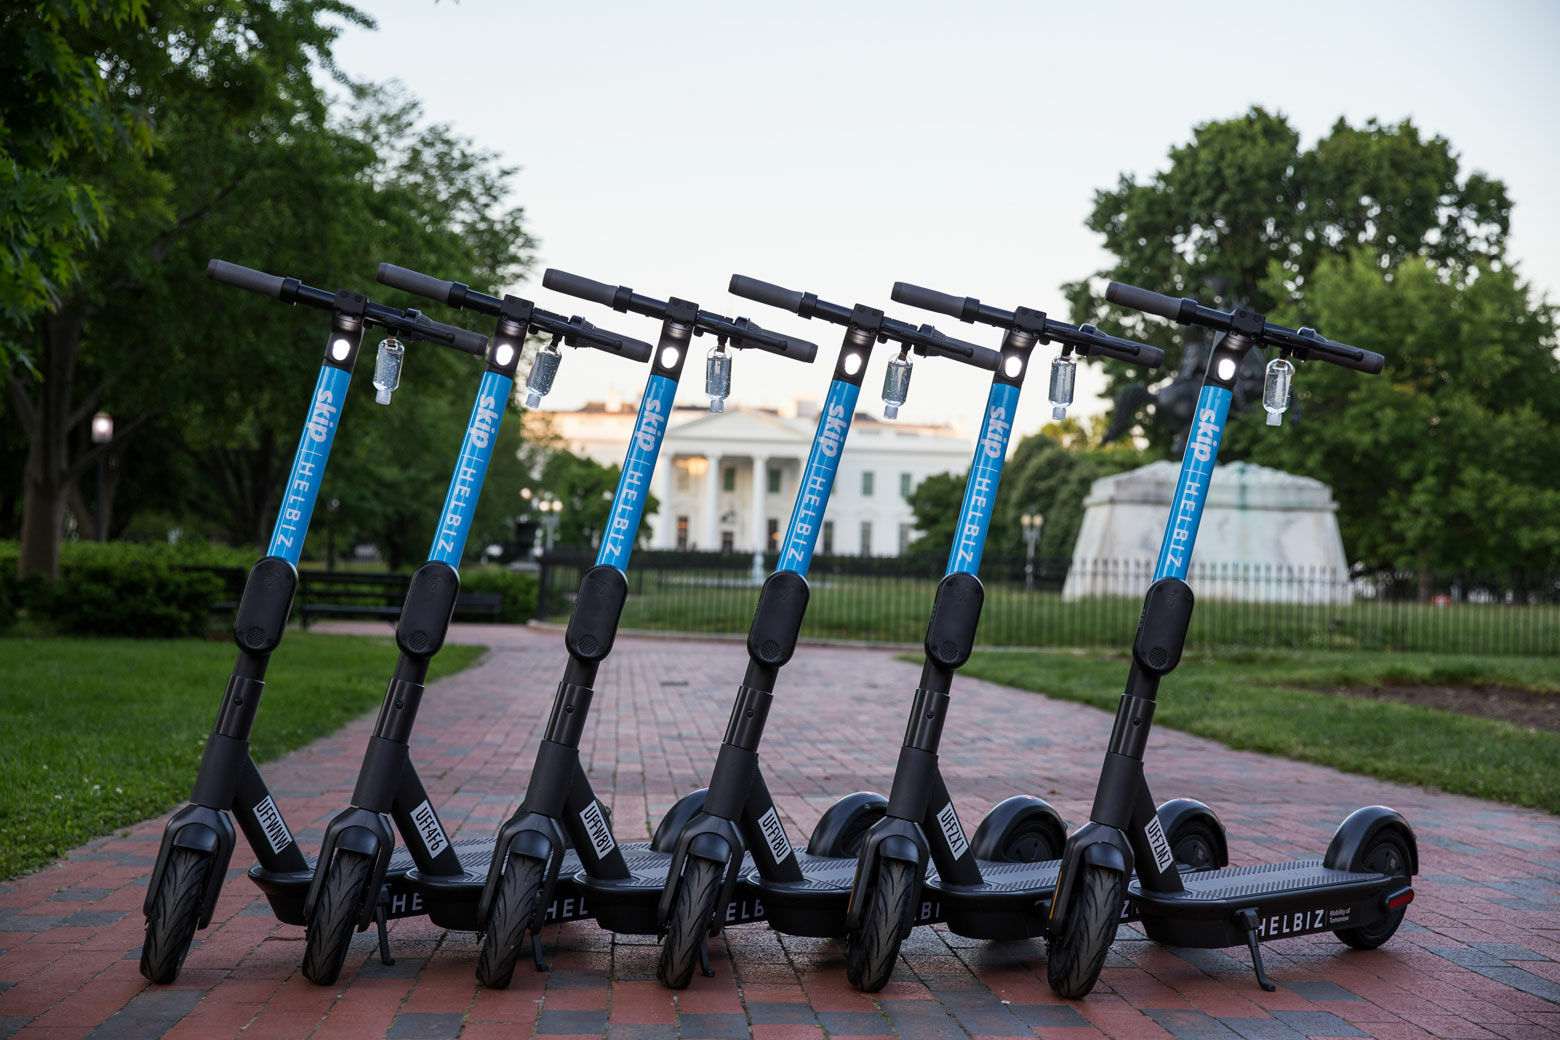 Upcoming DC law aims to stop electric scooters from littering sidewalks